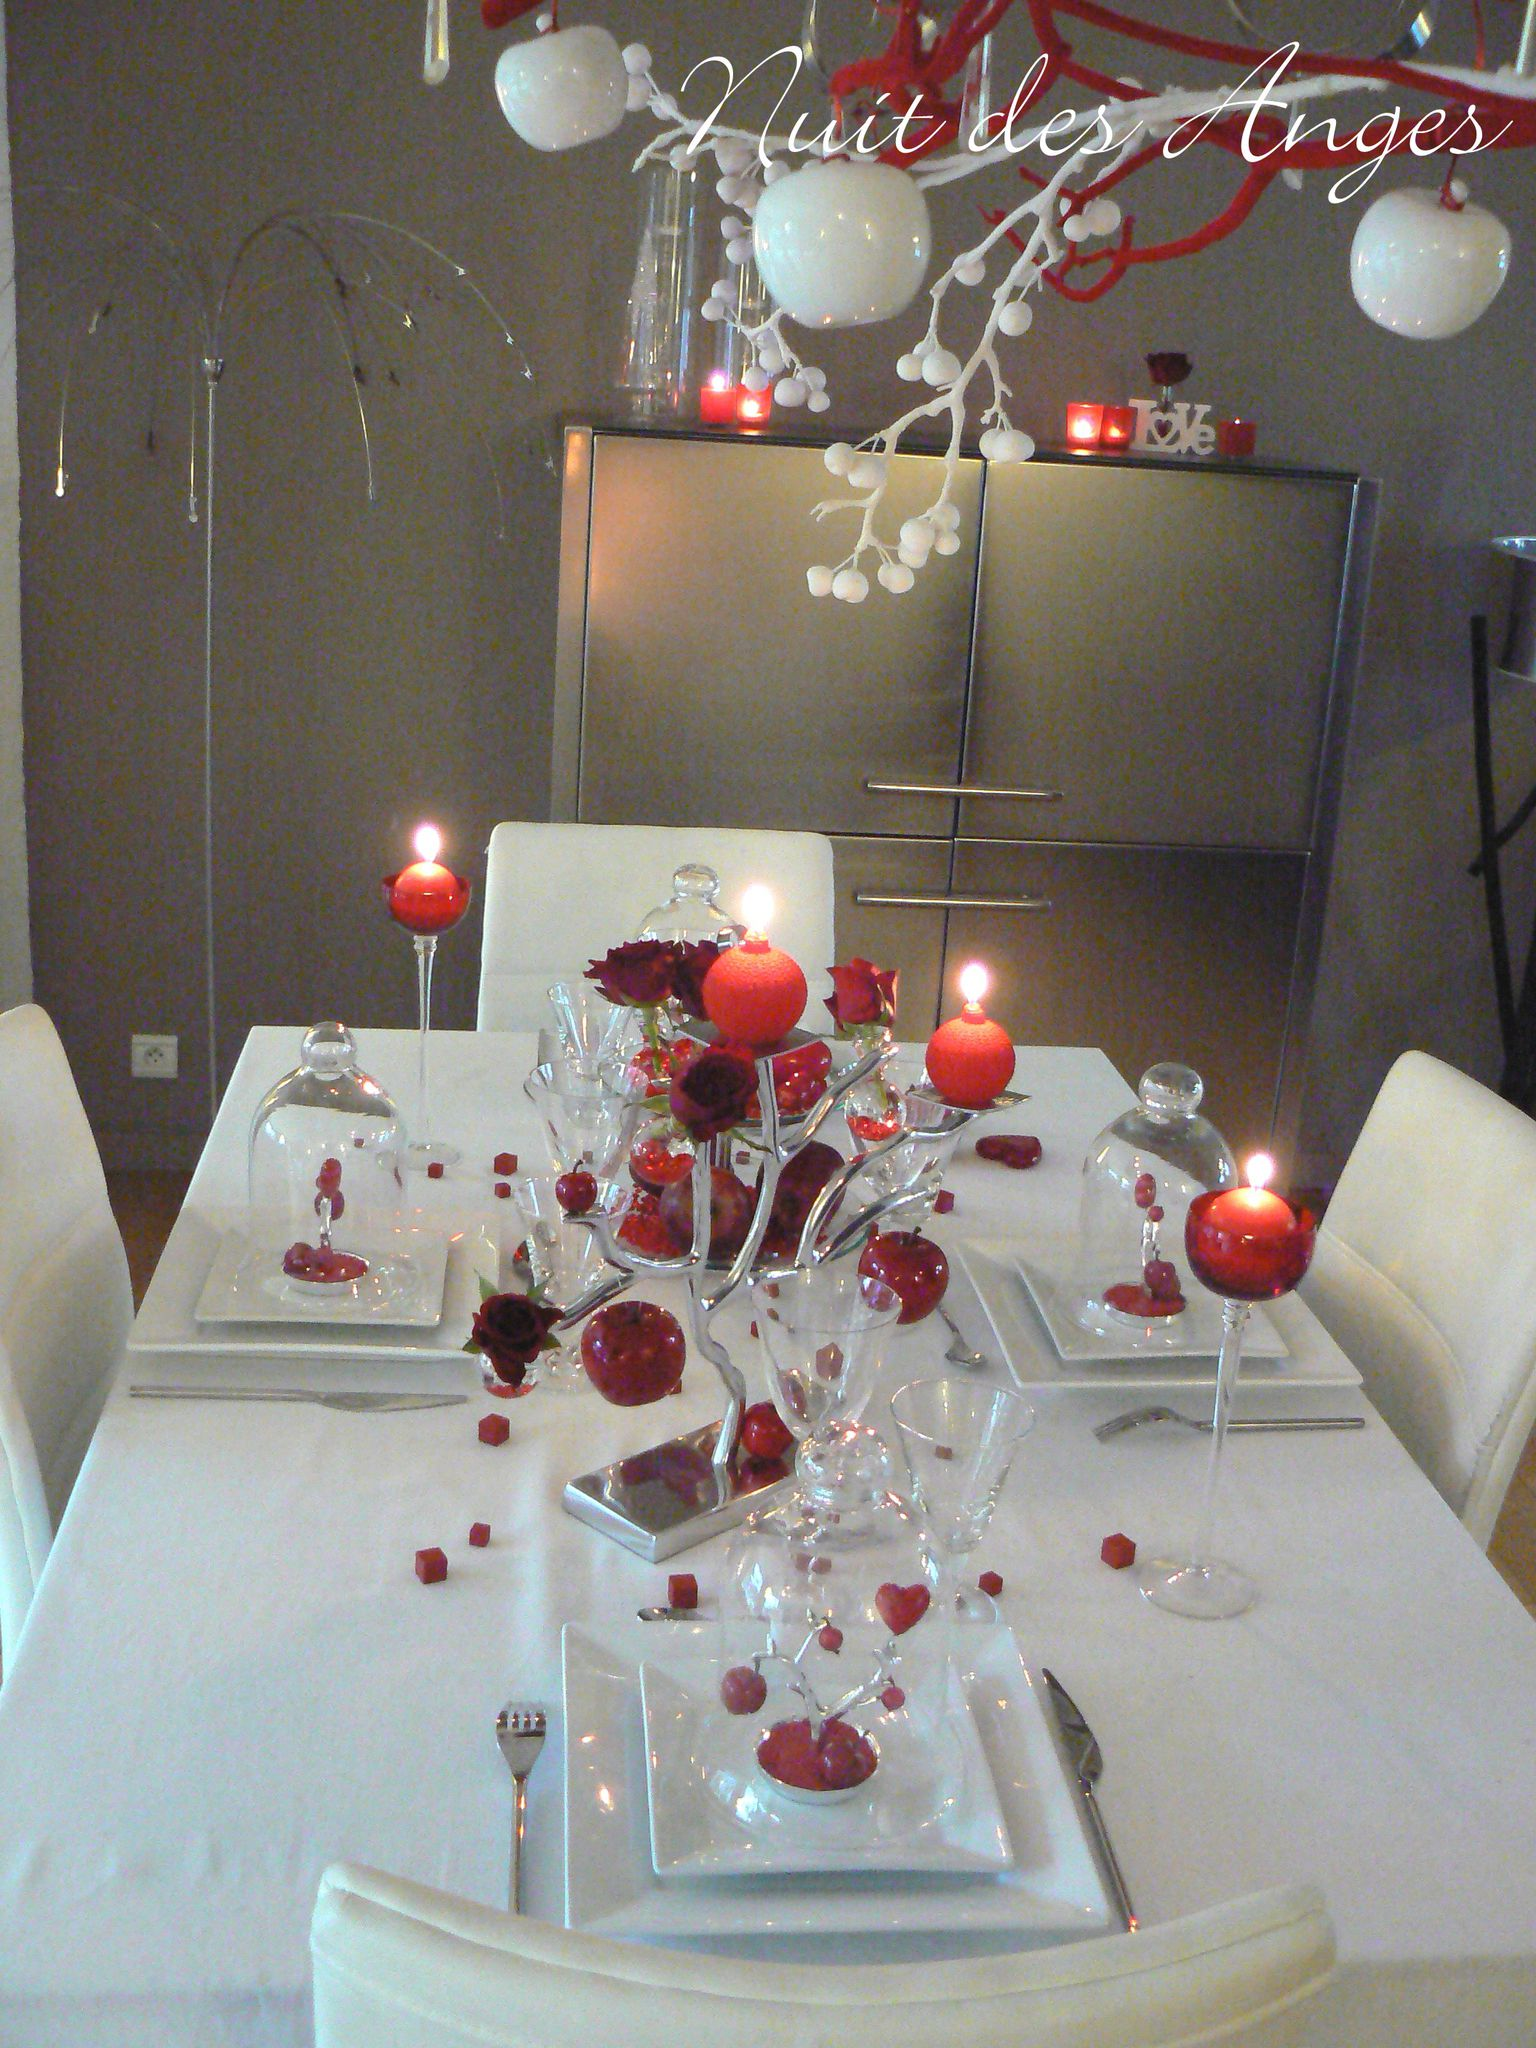 nuit des anges d coratrice de mariage d coration de table. Black Bedroom Furniture Sets. Home Design Ideas